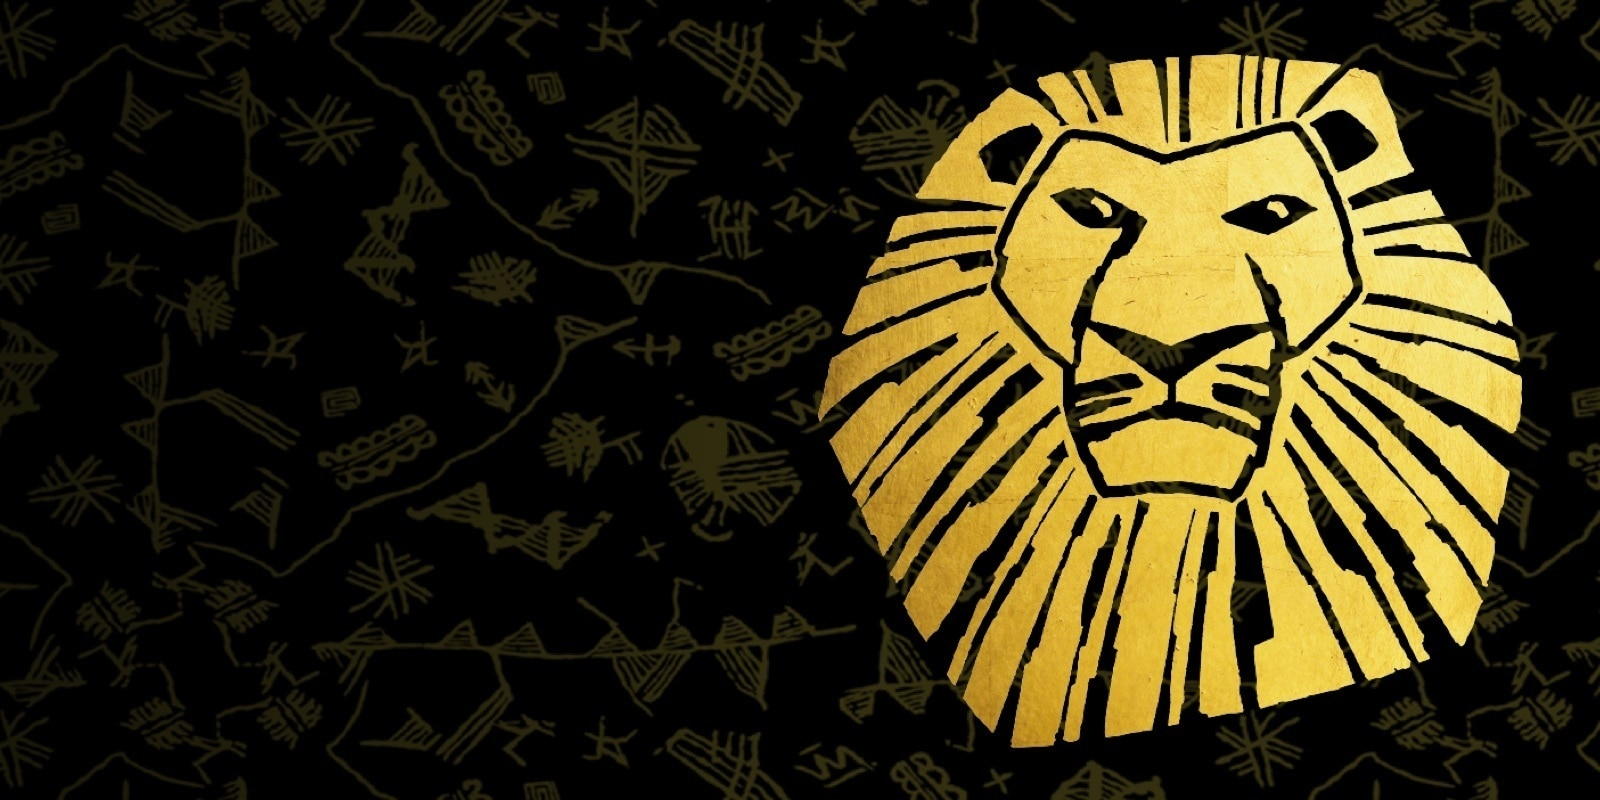 An icon image of Mufasa in gold over a black background